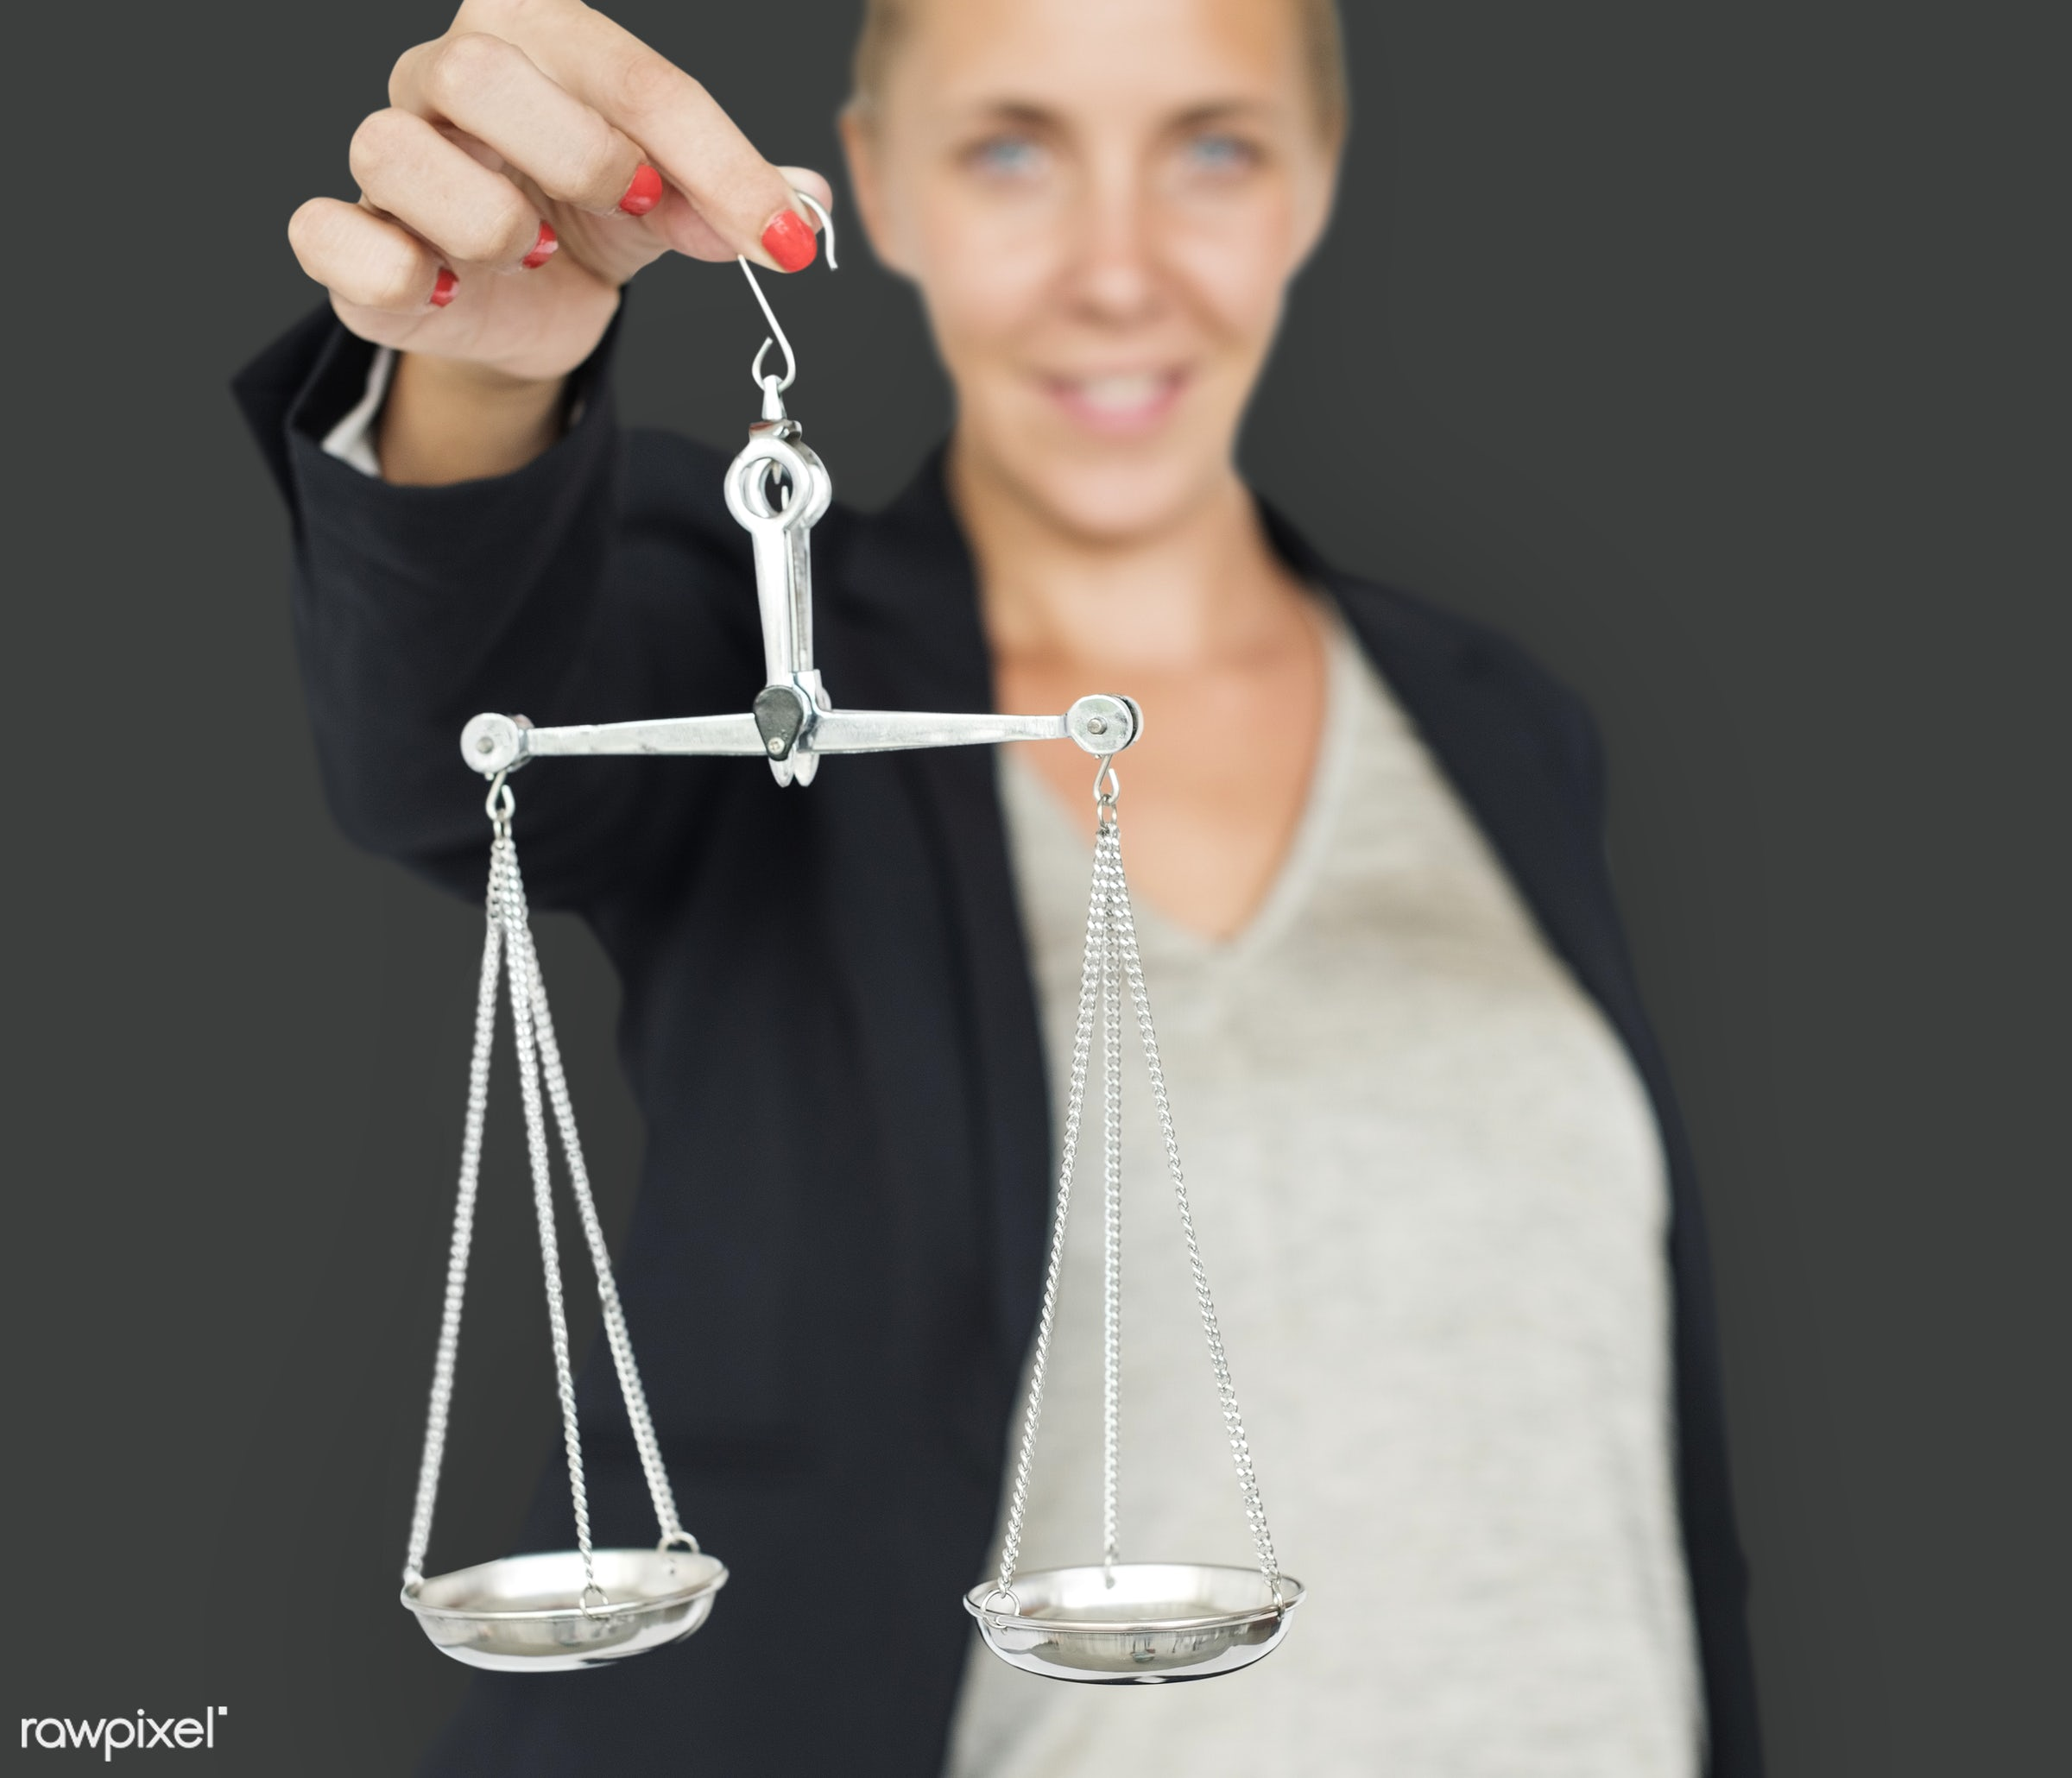 expression, studio, scale, person, business wear, people, business, caucasian, balance, girl, woman, happy, justice scale,...